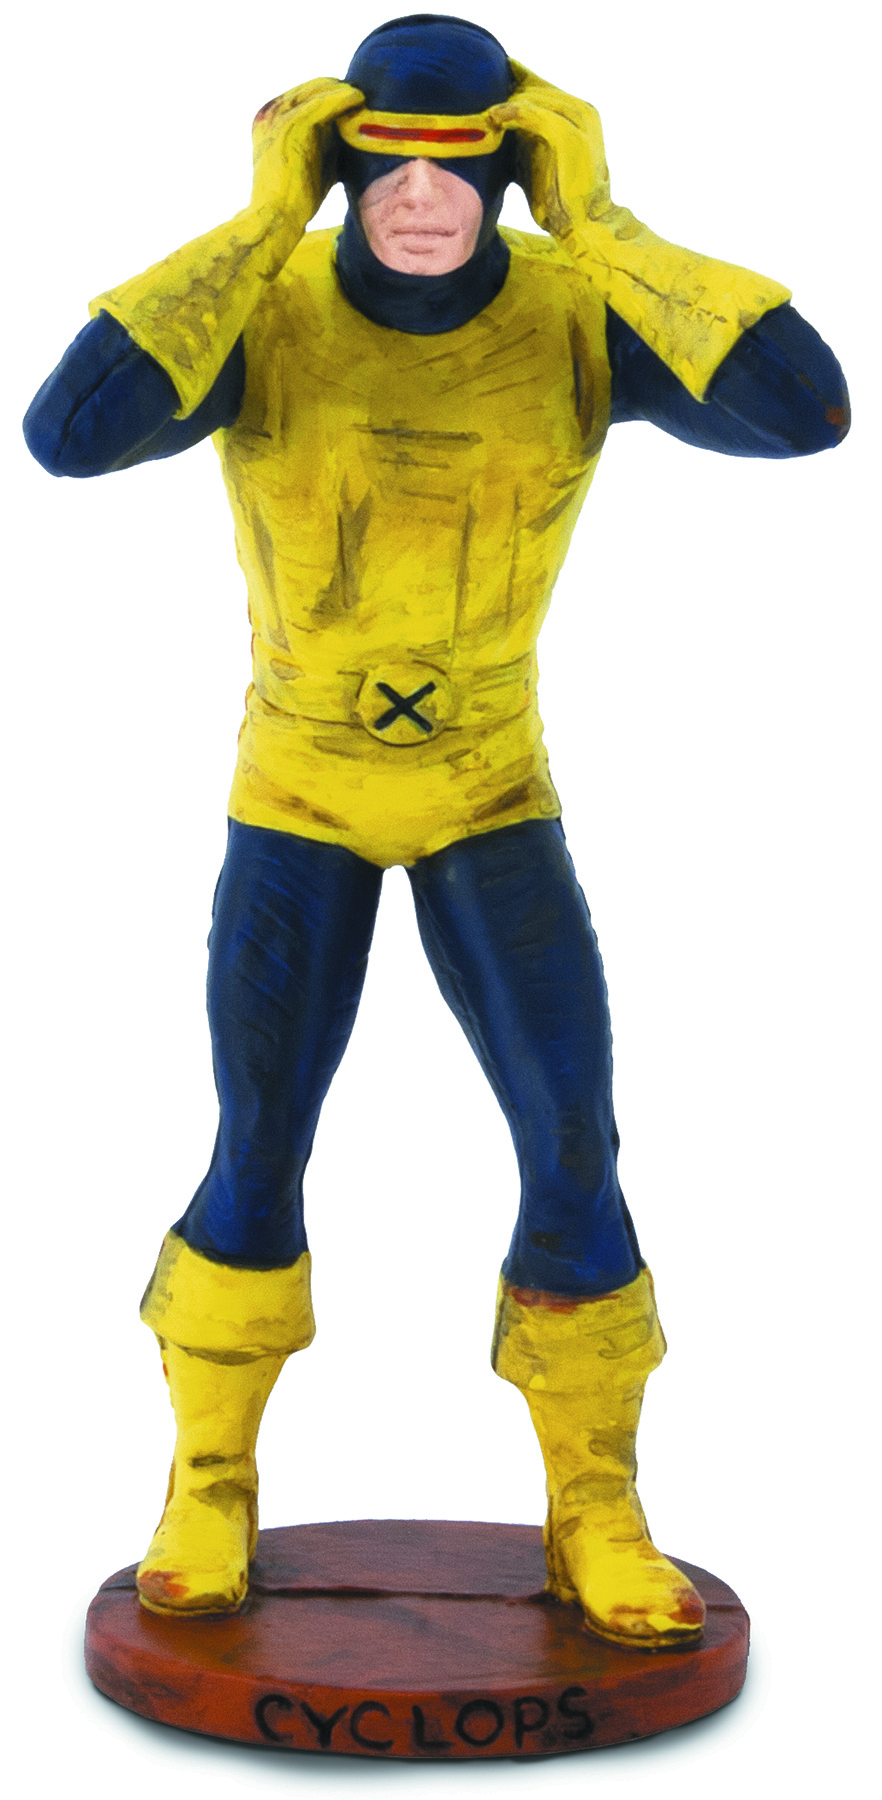 CLASSIC MARVEL CHARACTERS X-MEN #1 CYCLOPS